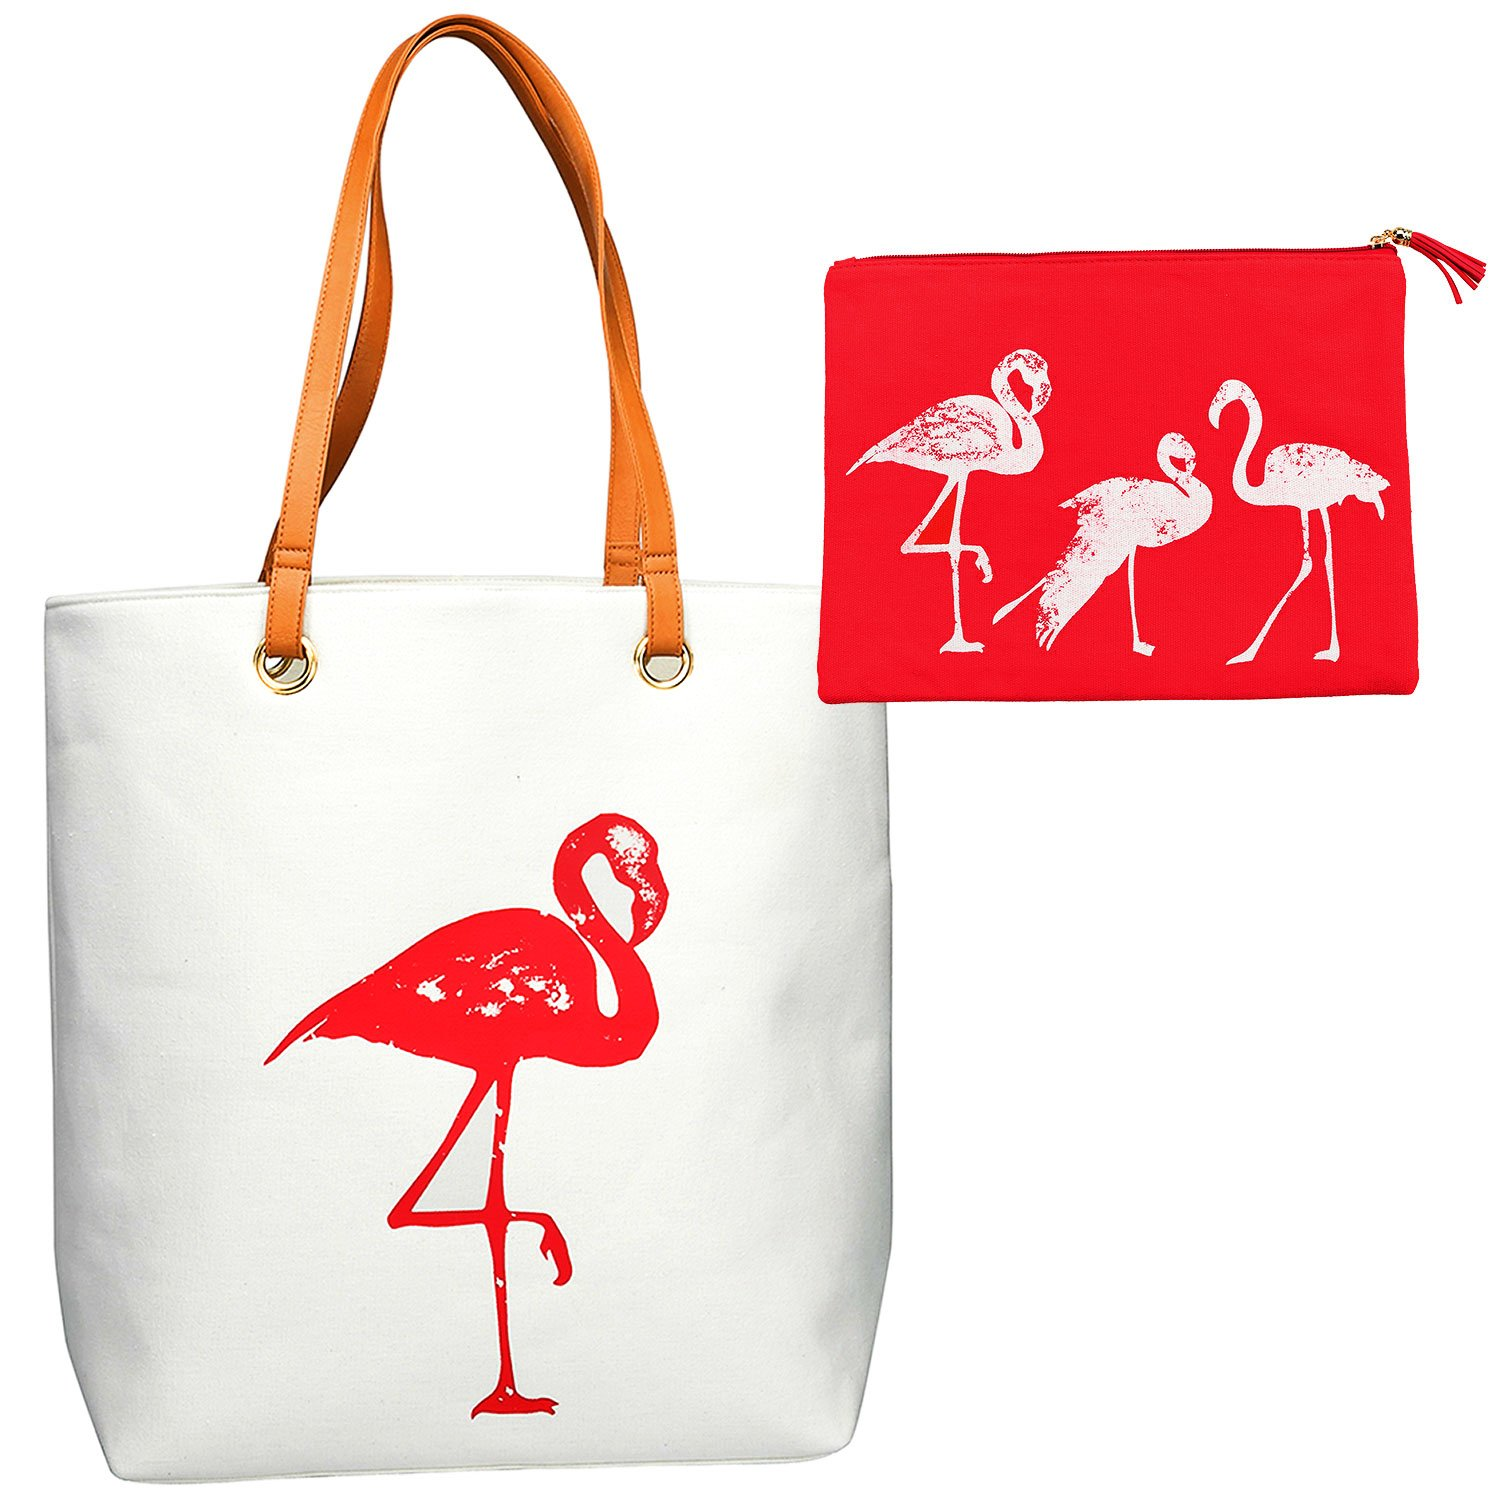 XL Large Cotton Canvas Flamingo Tote & Accessory Bag for Beach, Travel & Every Day by Kodi Lifestyle Collection (Image #1)